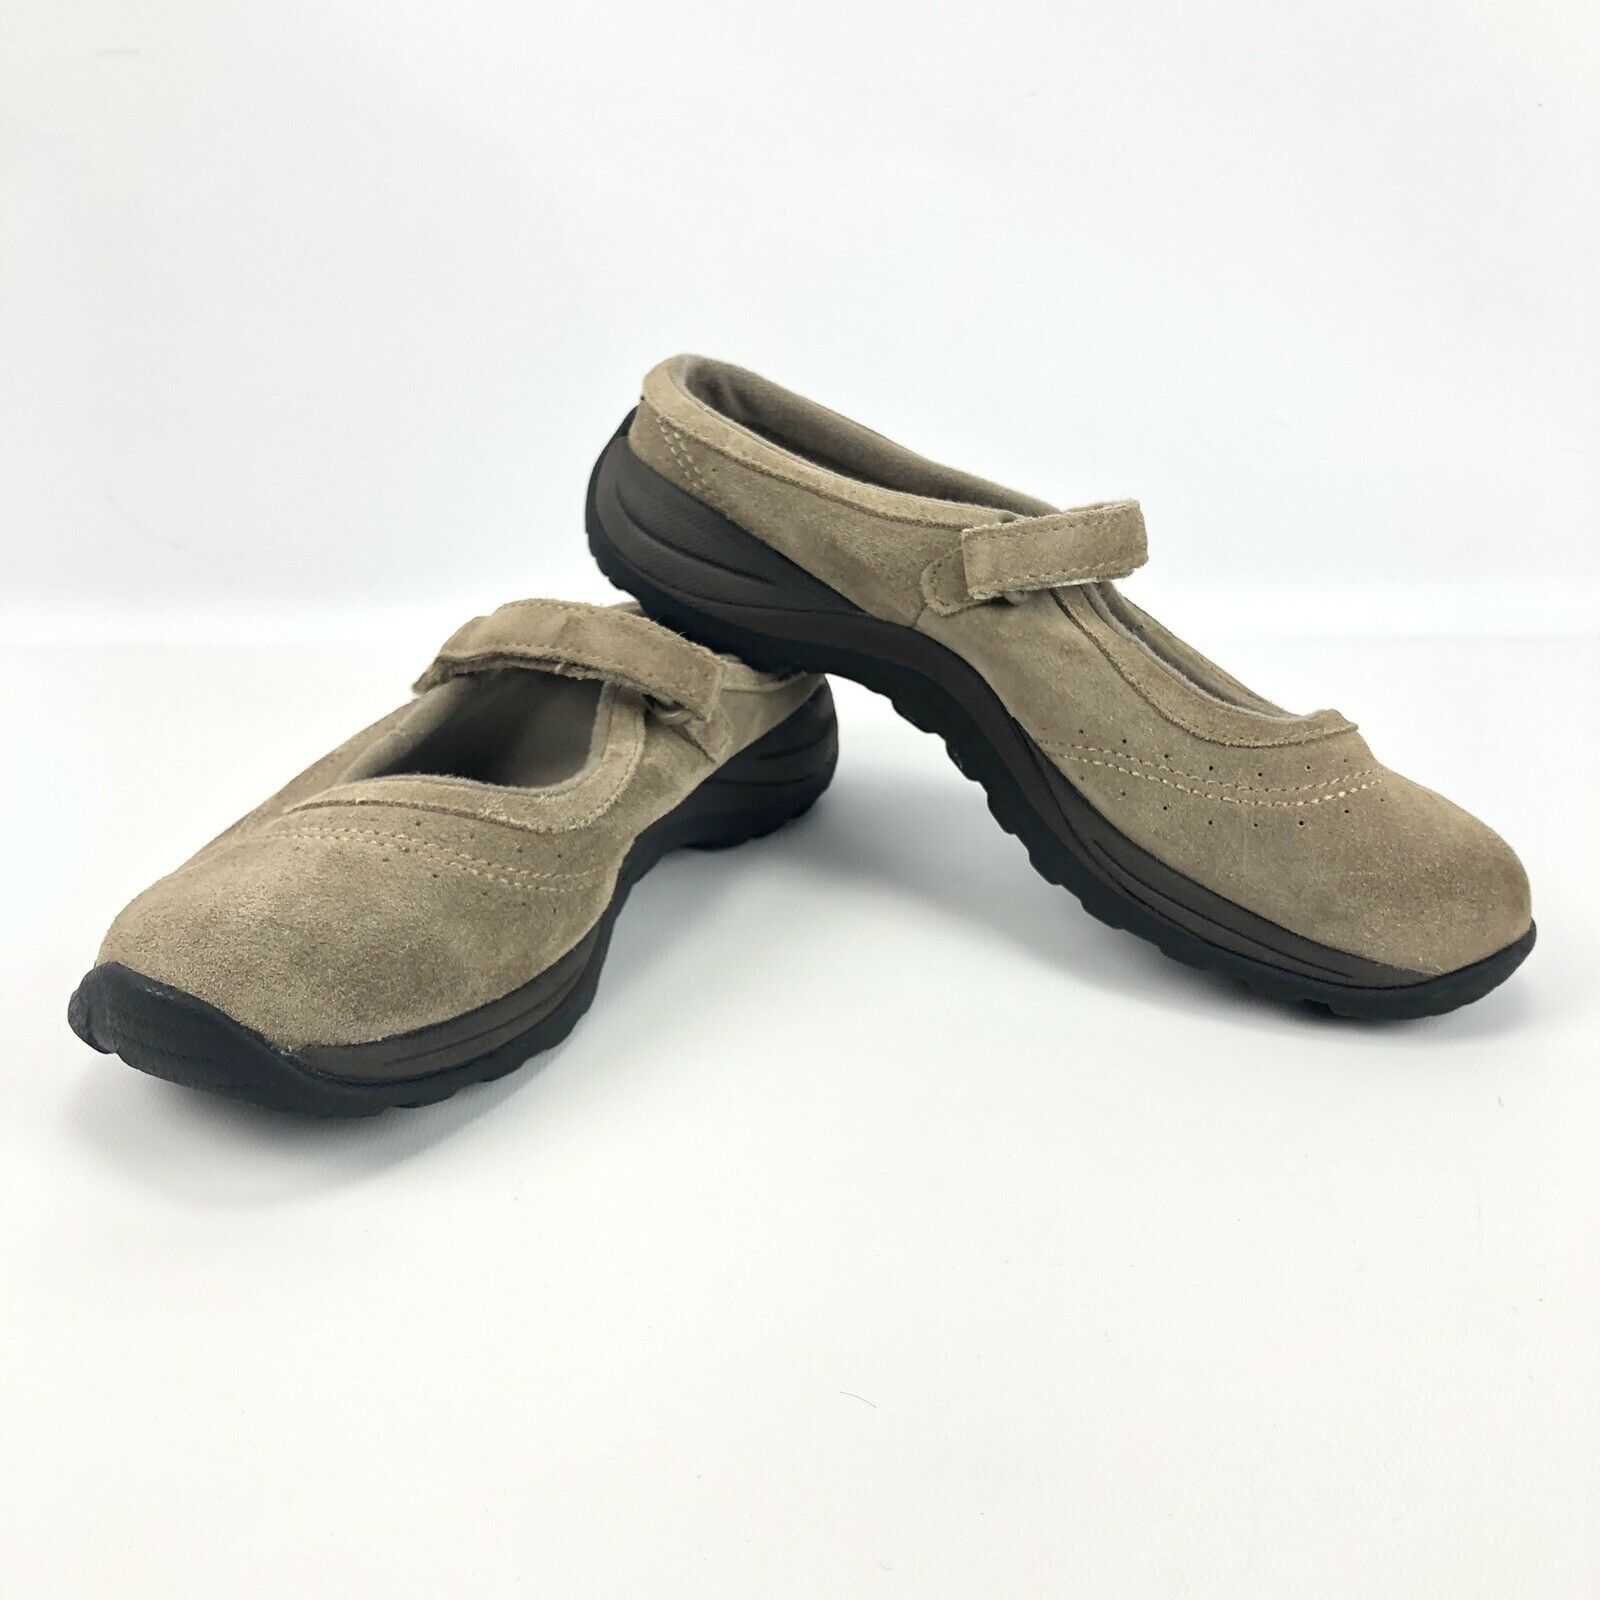 LL Bean Mary Jane Flats Clog Mules Brown Suede Leather shoes Womens Size 9.5M